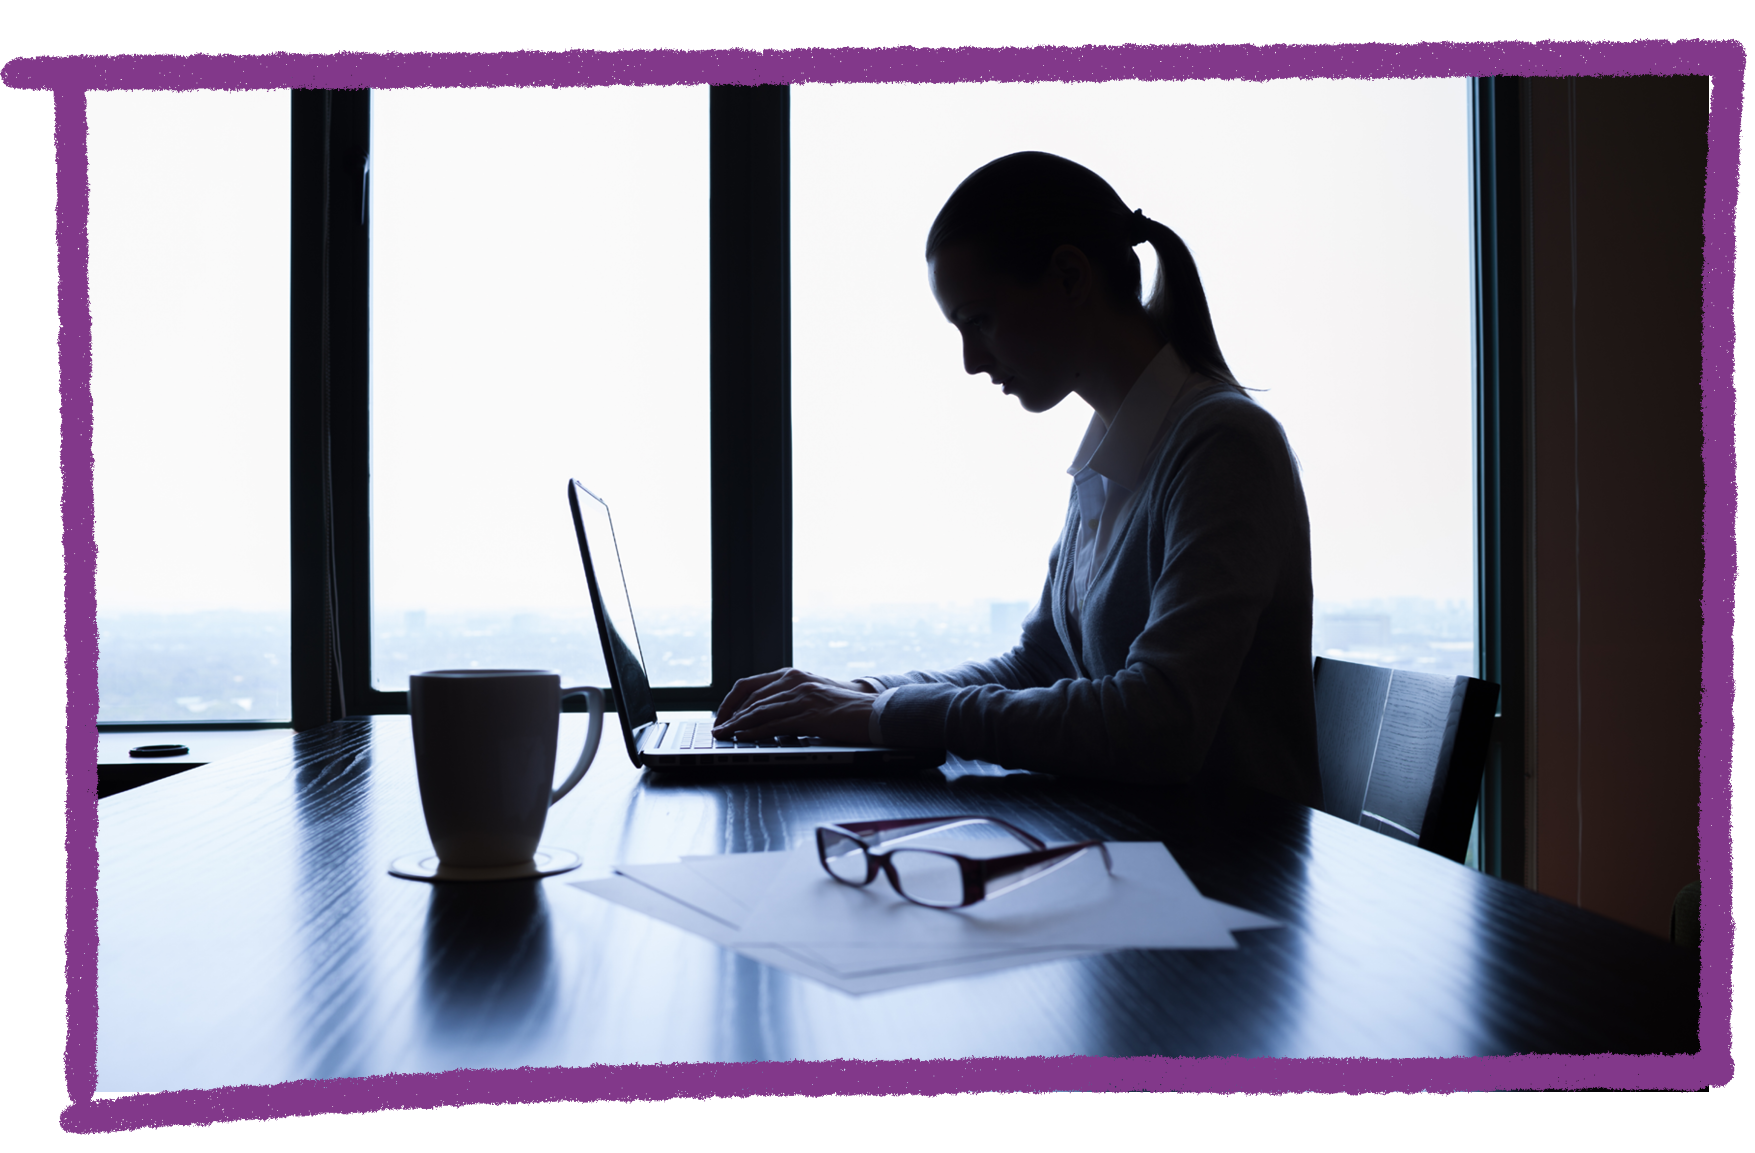 A photo of a woman on a computer in a dark office